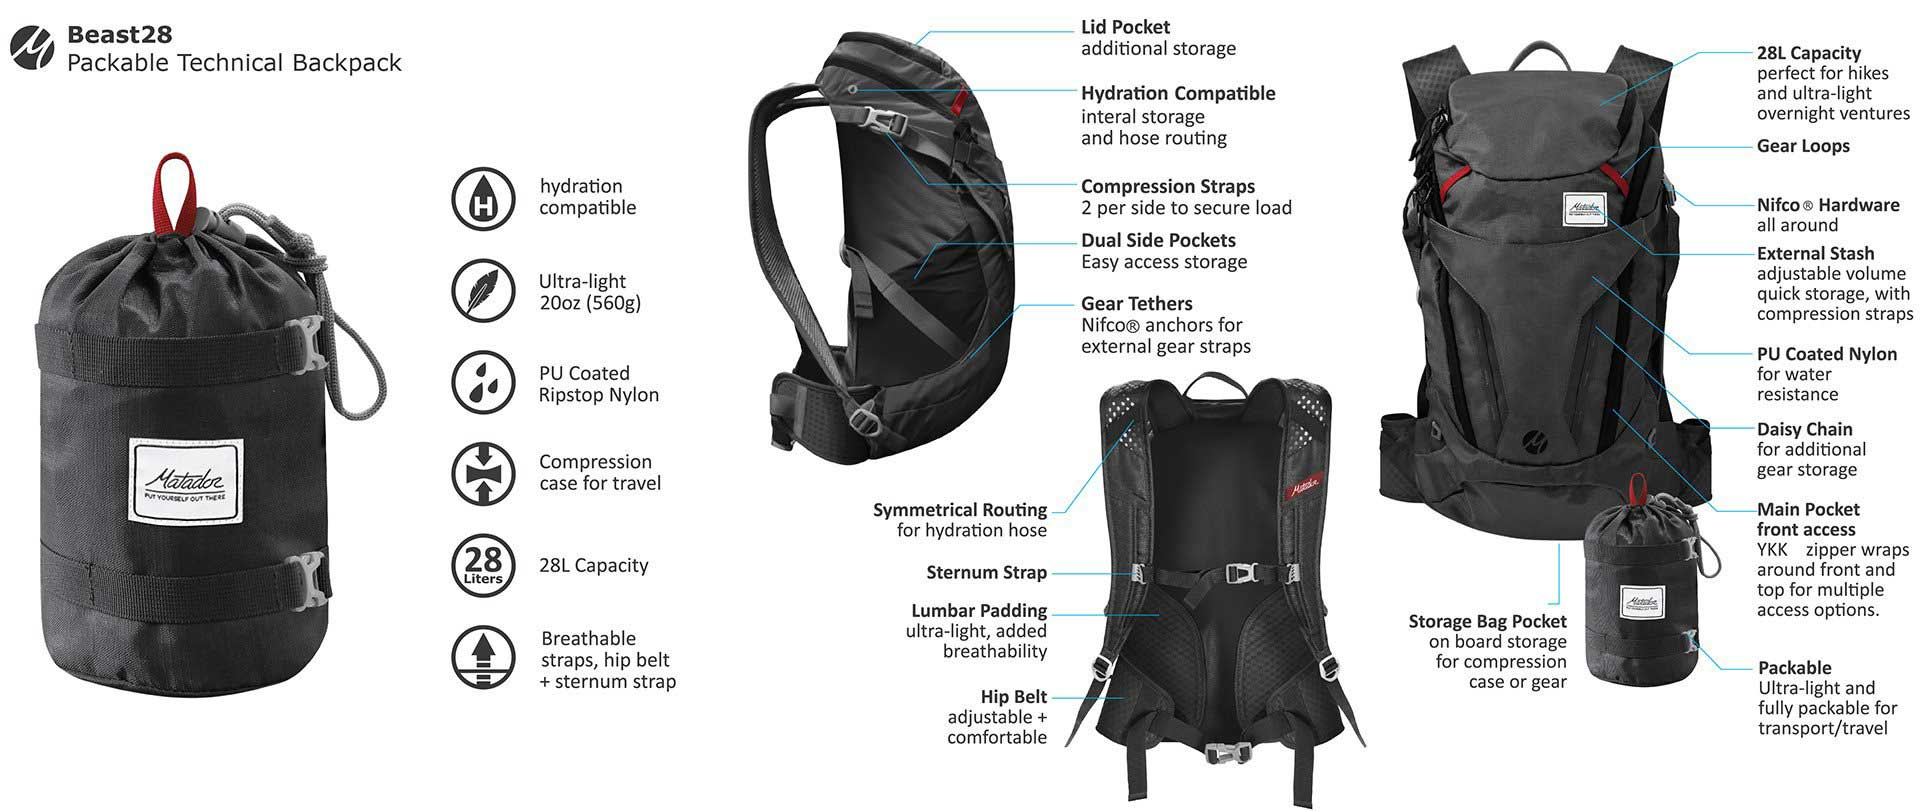 Beast28 Packabe Technical Backpack:hydration compatible, Ultra-light (560g), PU Coated Ripstop Nylon, Compression case for travel, 28L capacity, Breathable strap, hip belt, +sternum strap